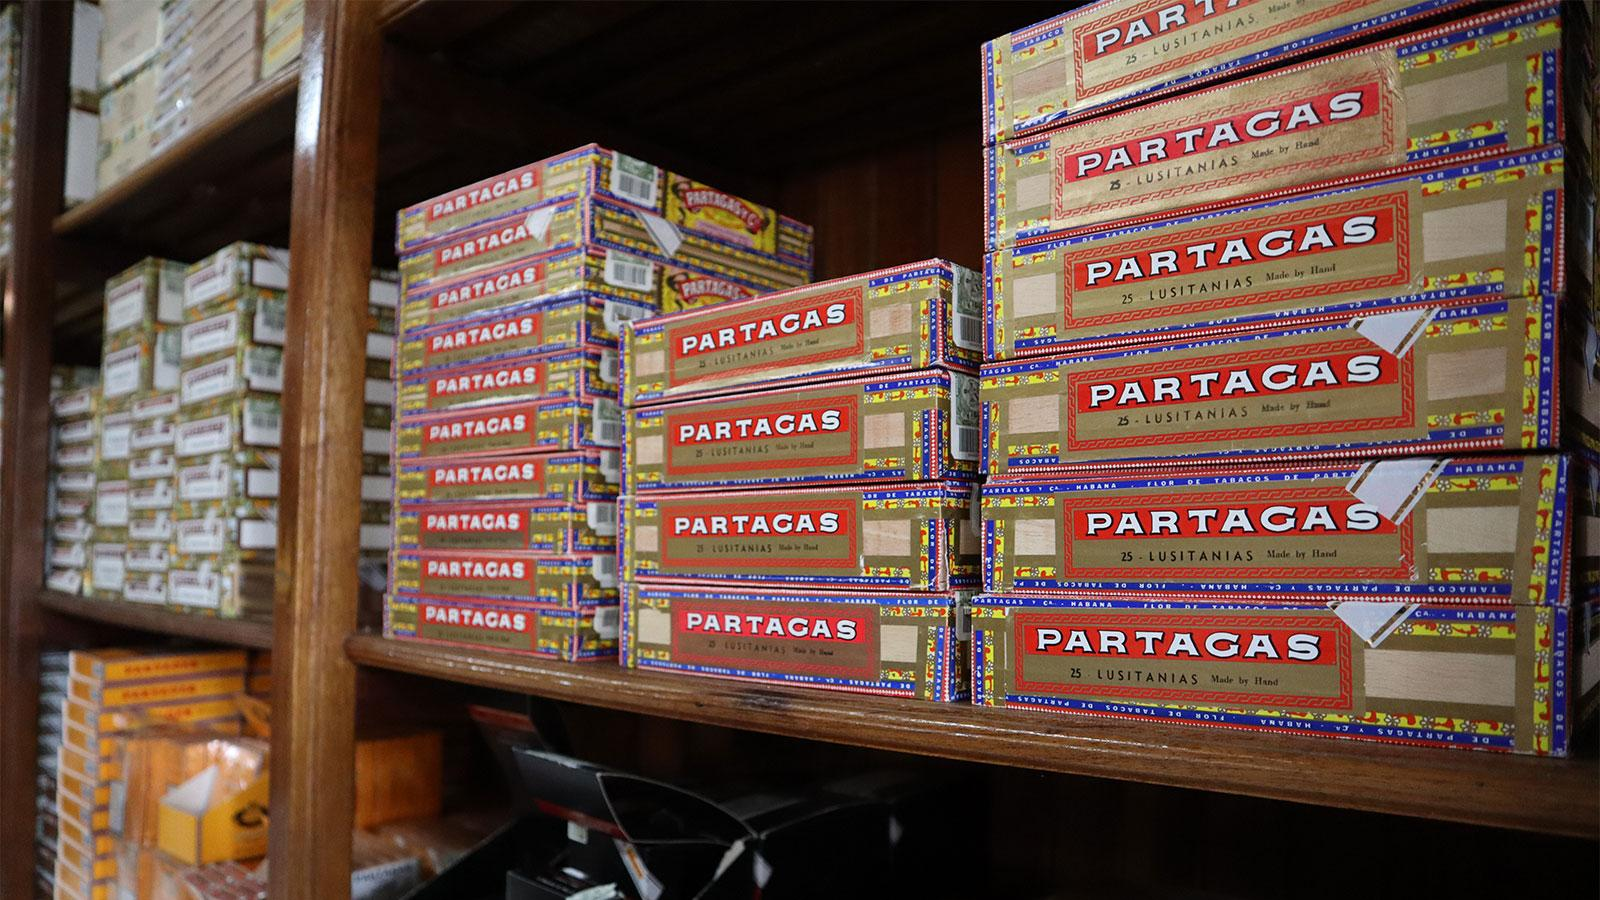 Partagas Cigar Shopping